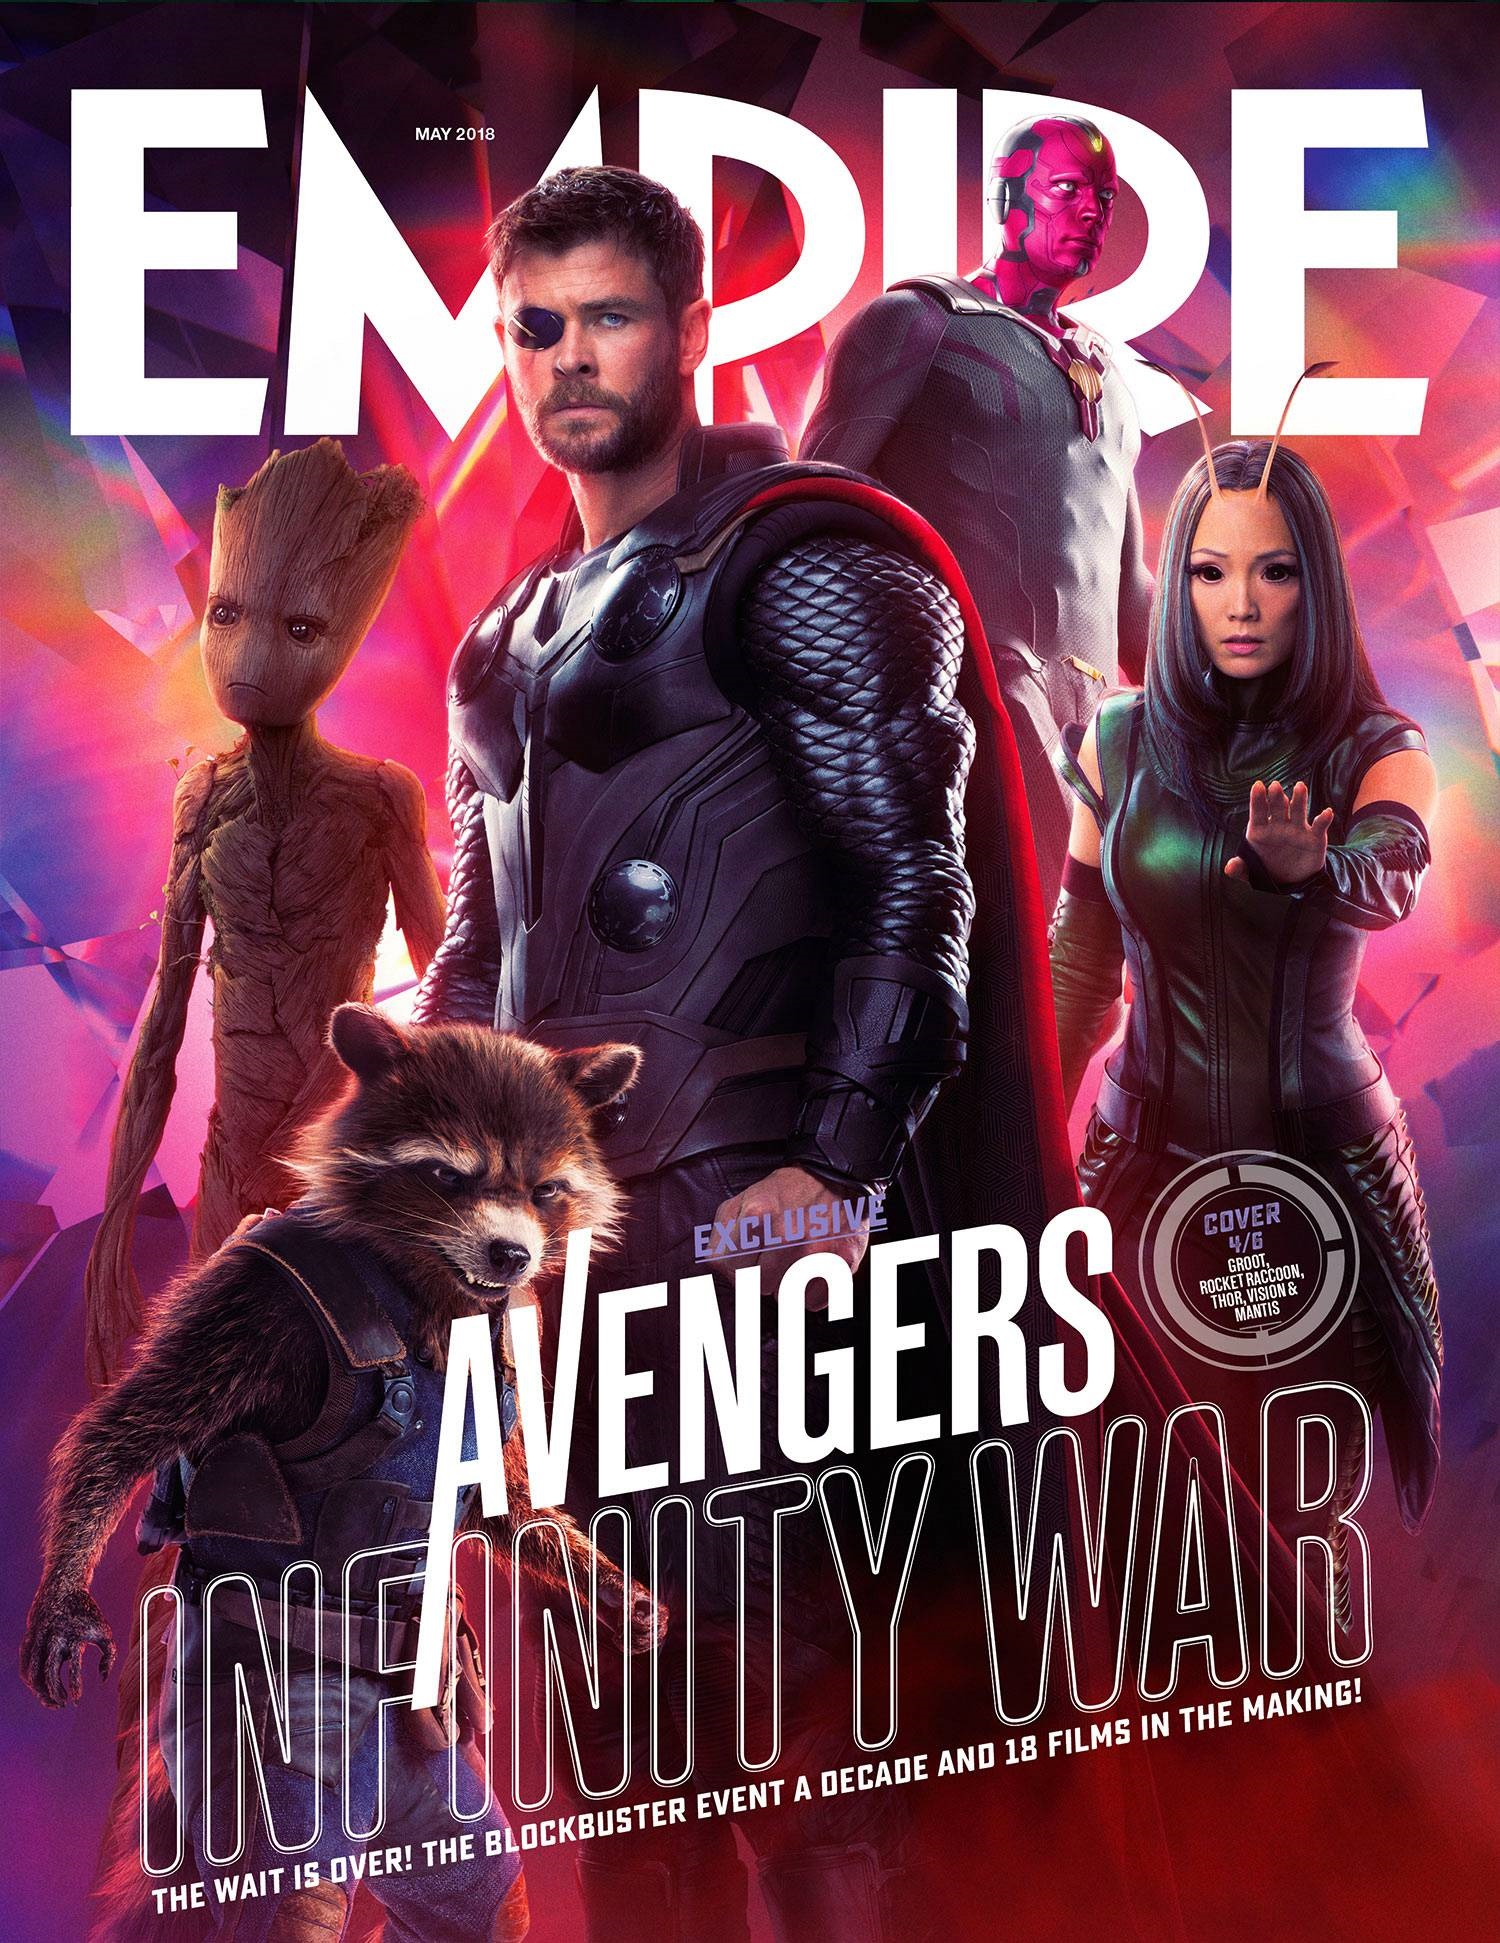 Cover featuring Thor, Mantis, Rocket, Groot and Vision